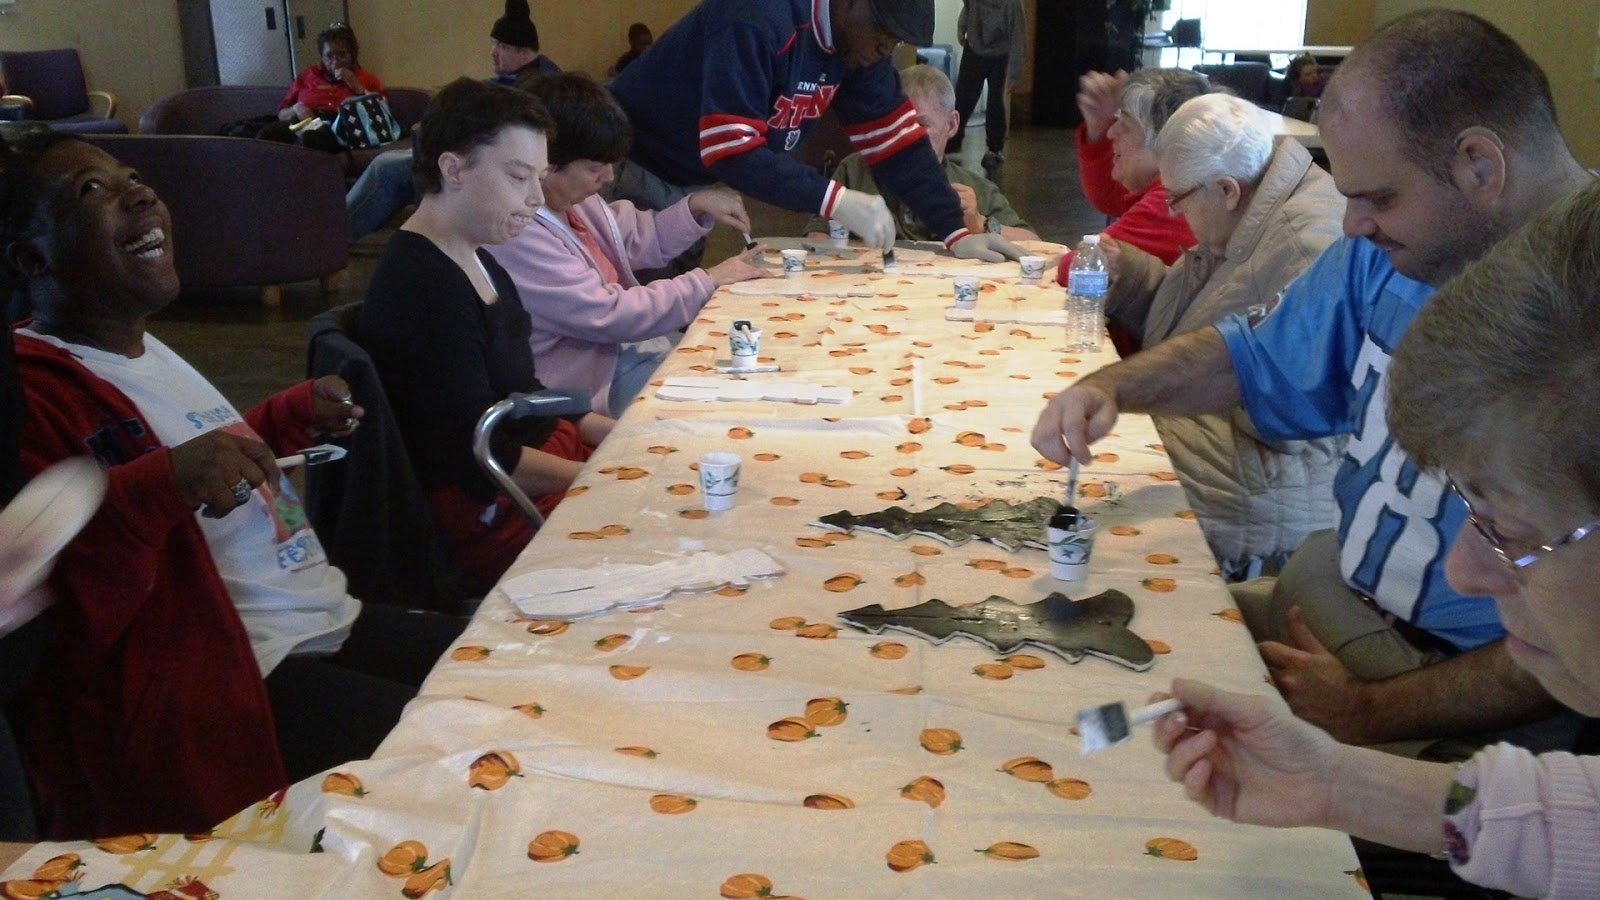 christmas crafts for adults with disabilities